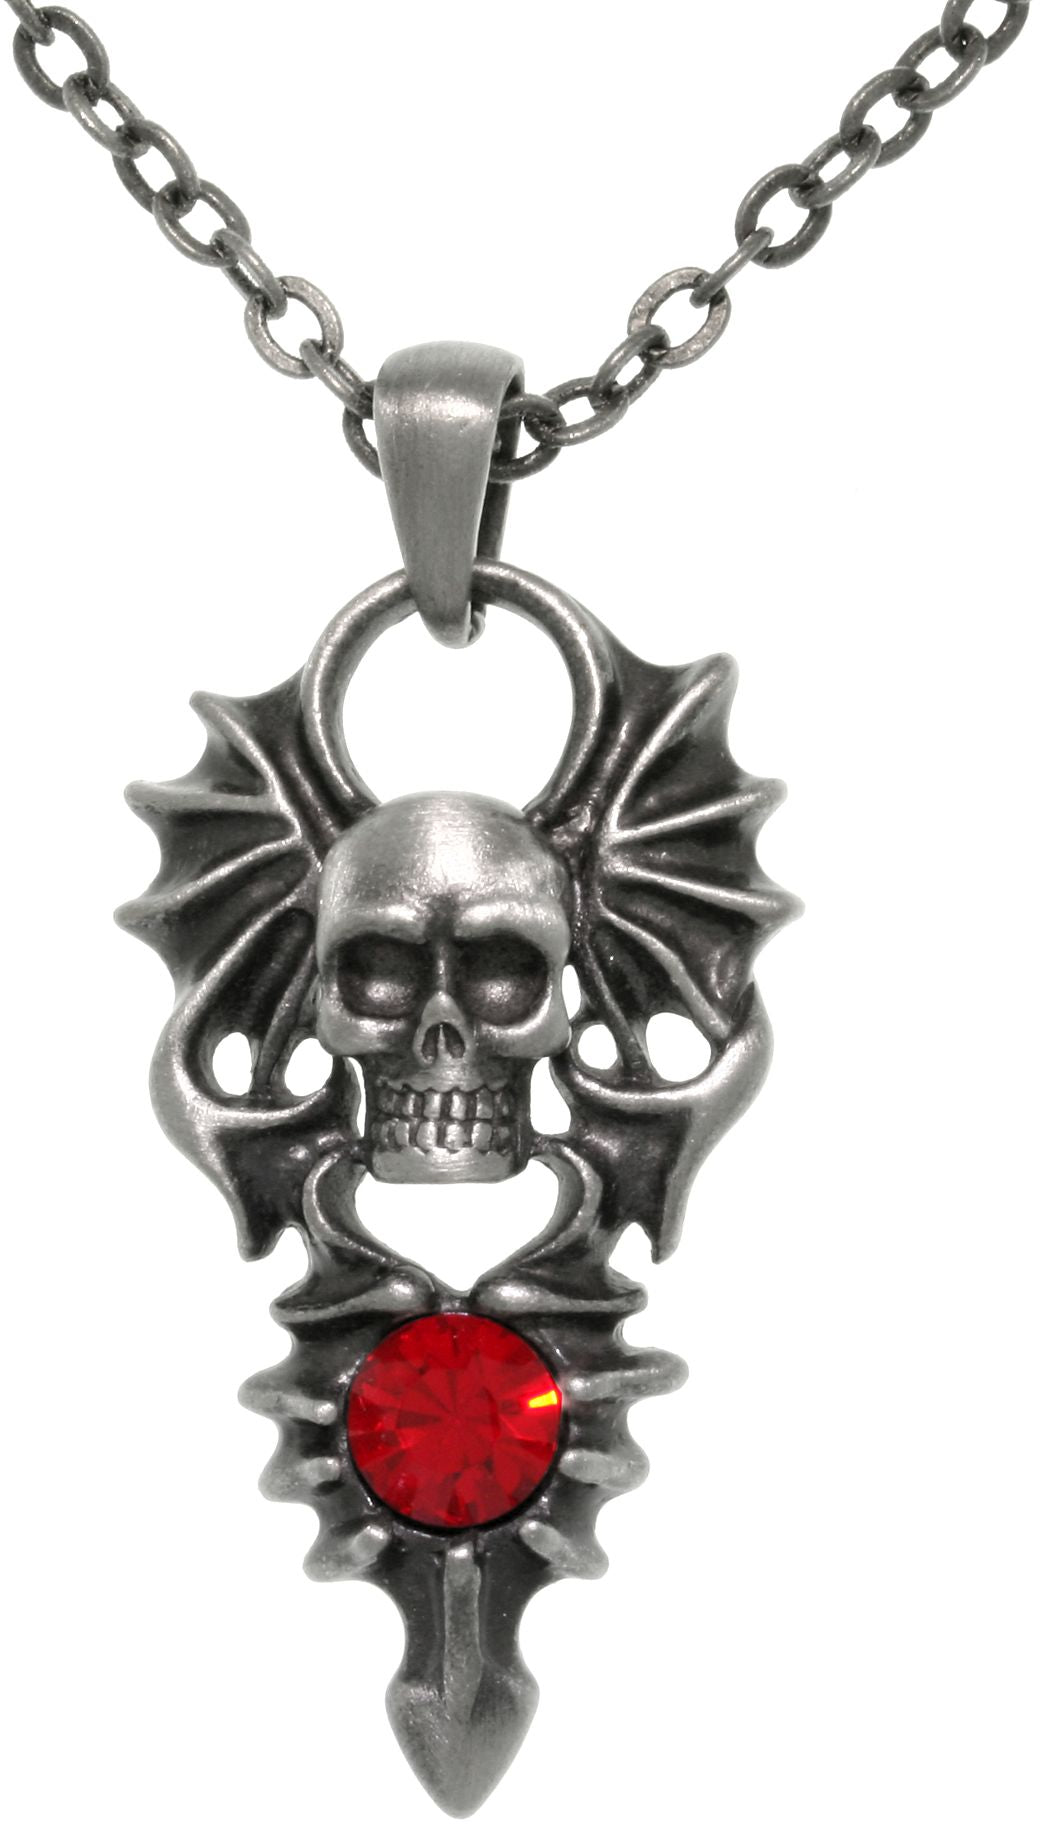 Jewelry Trends Pewter Winged Skull Pendant with Red Stone on 24 Inch Chain Necklace